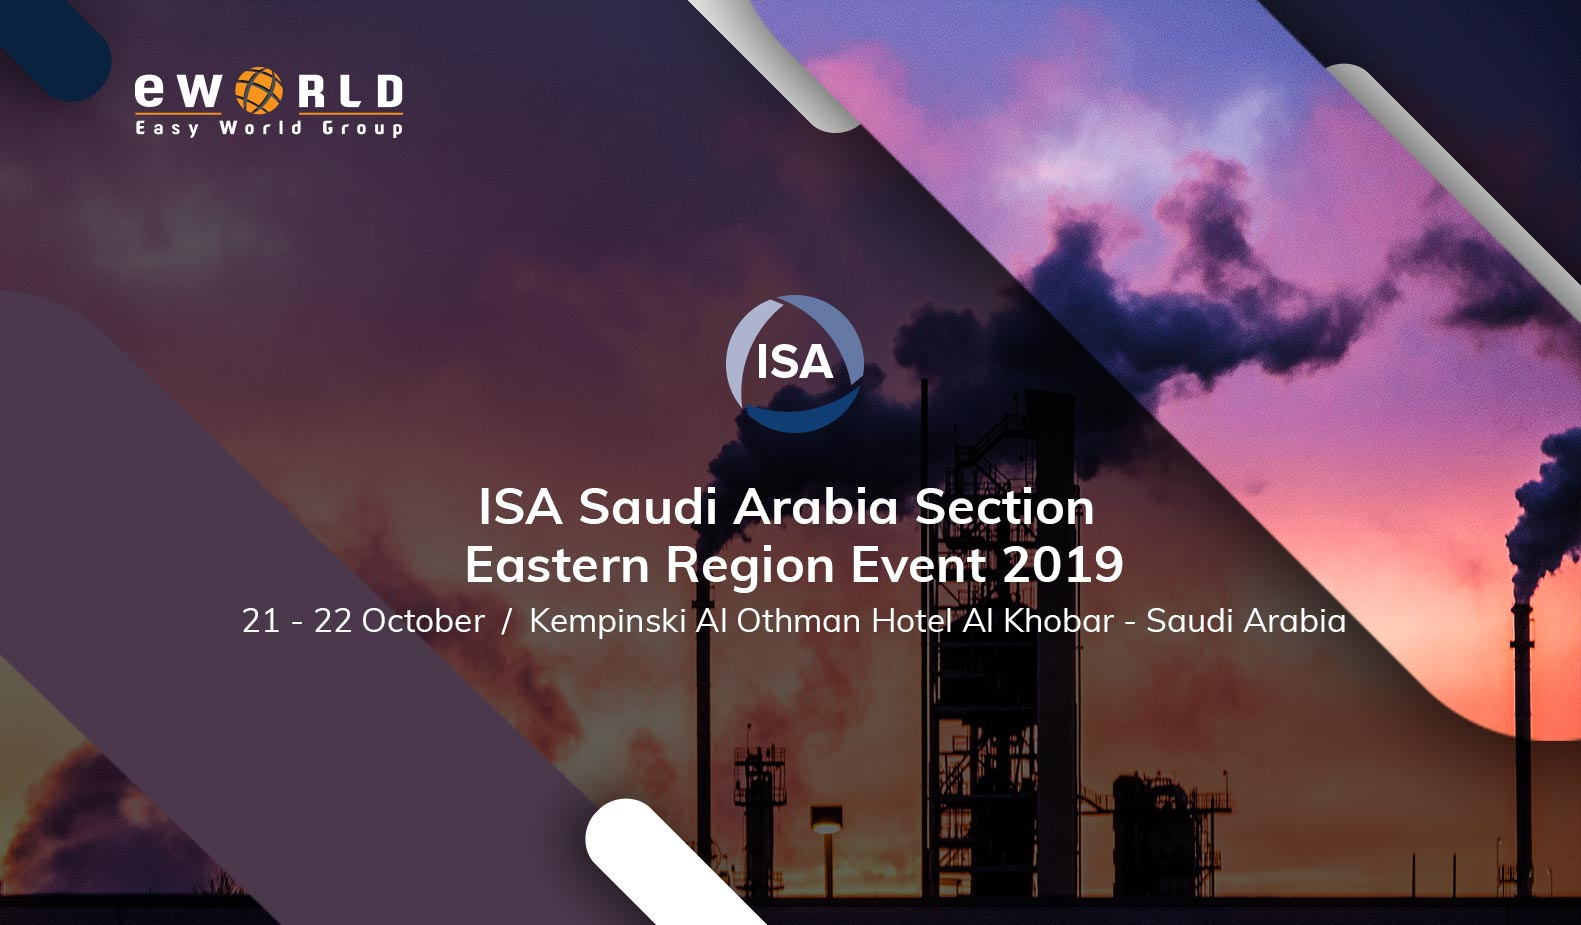 ISA Saudi Arabia Section 2019